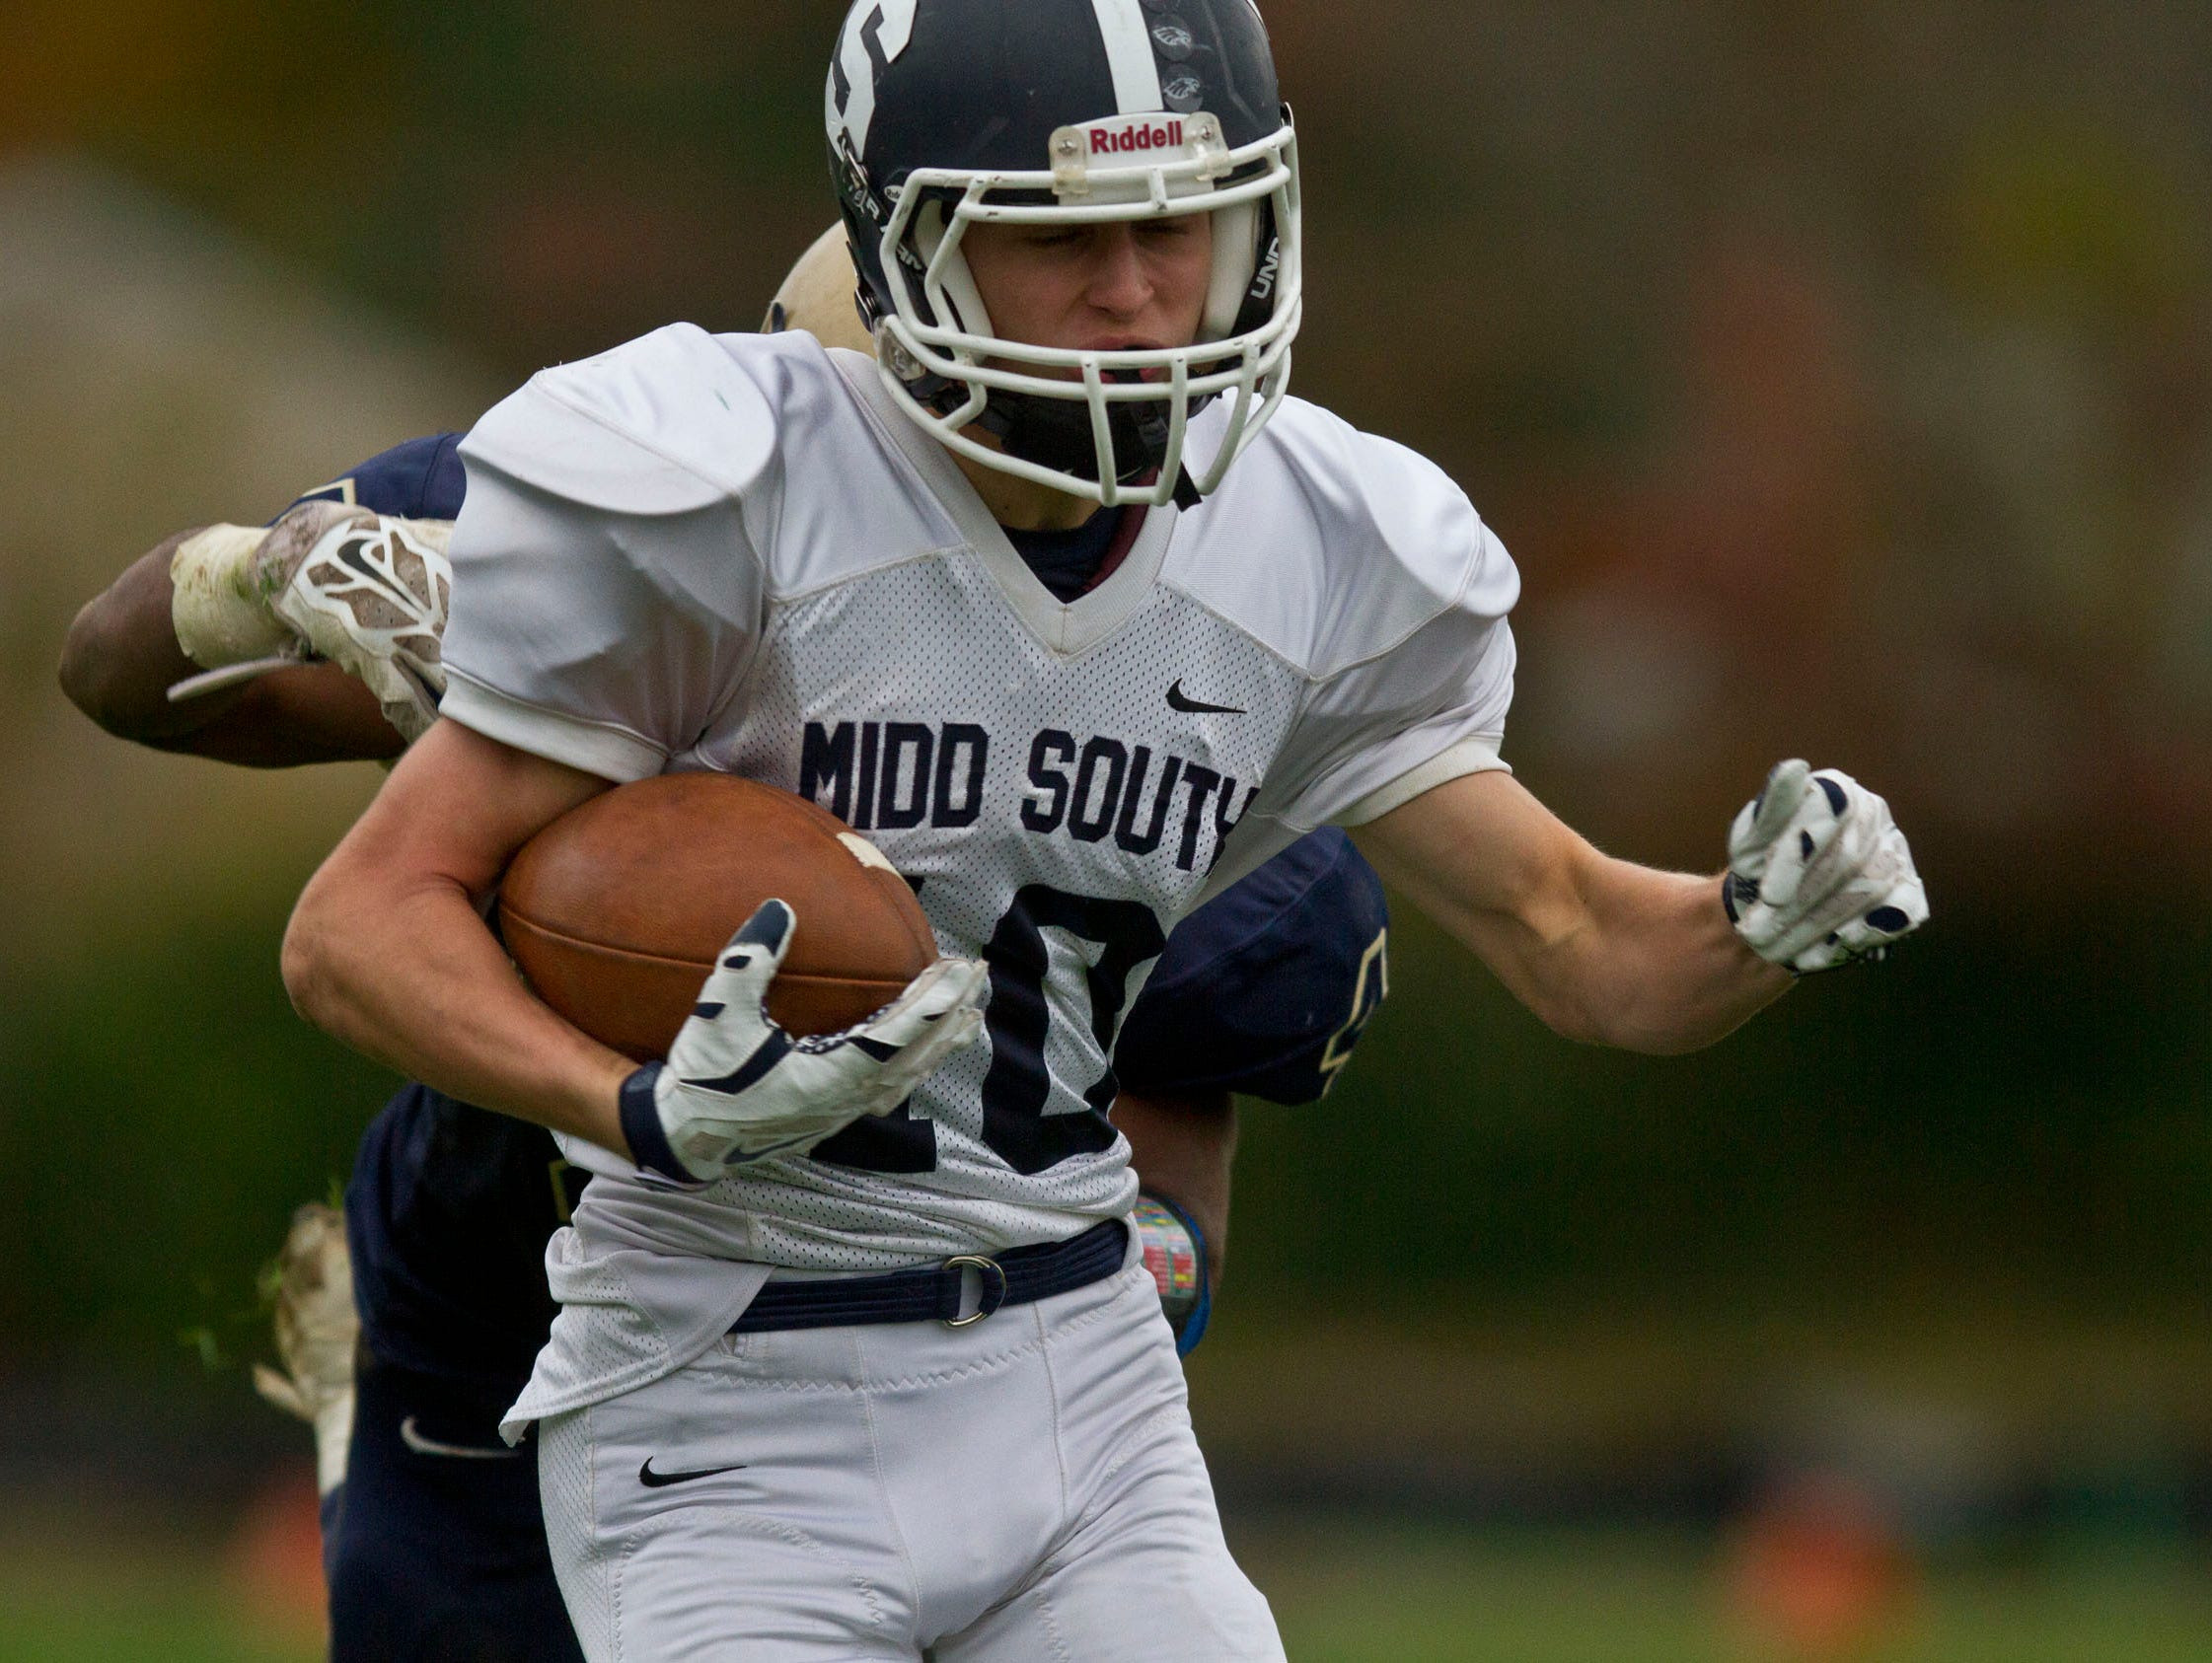 Middletown South's Jeff Lewandowski makes a touchdown reception. Middletown South at Freehold football. Freehold, NJ Saturday, November 7, 2015 @dhoodhood